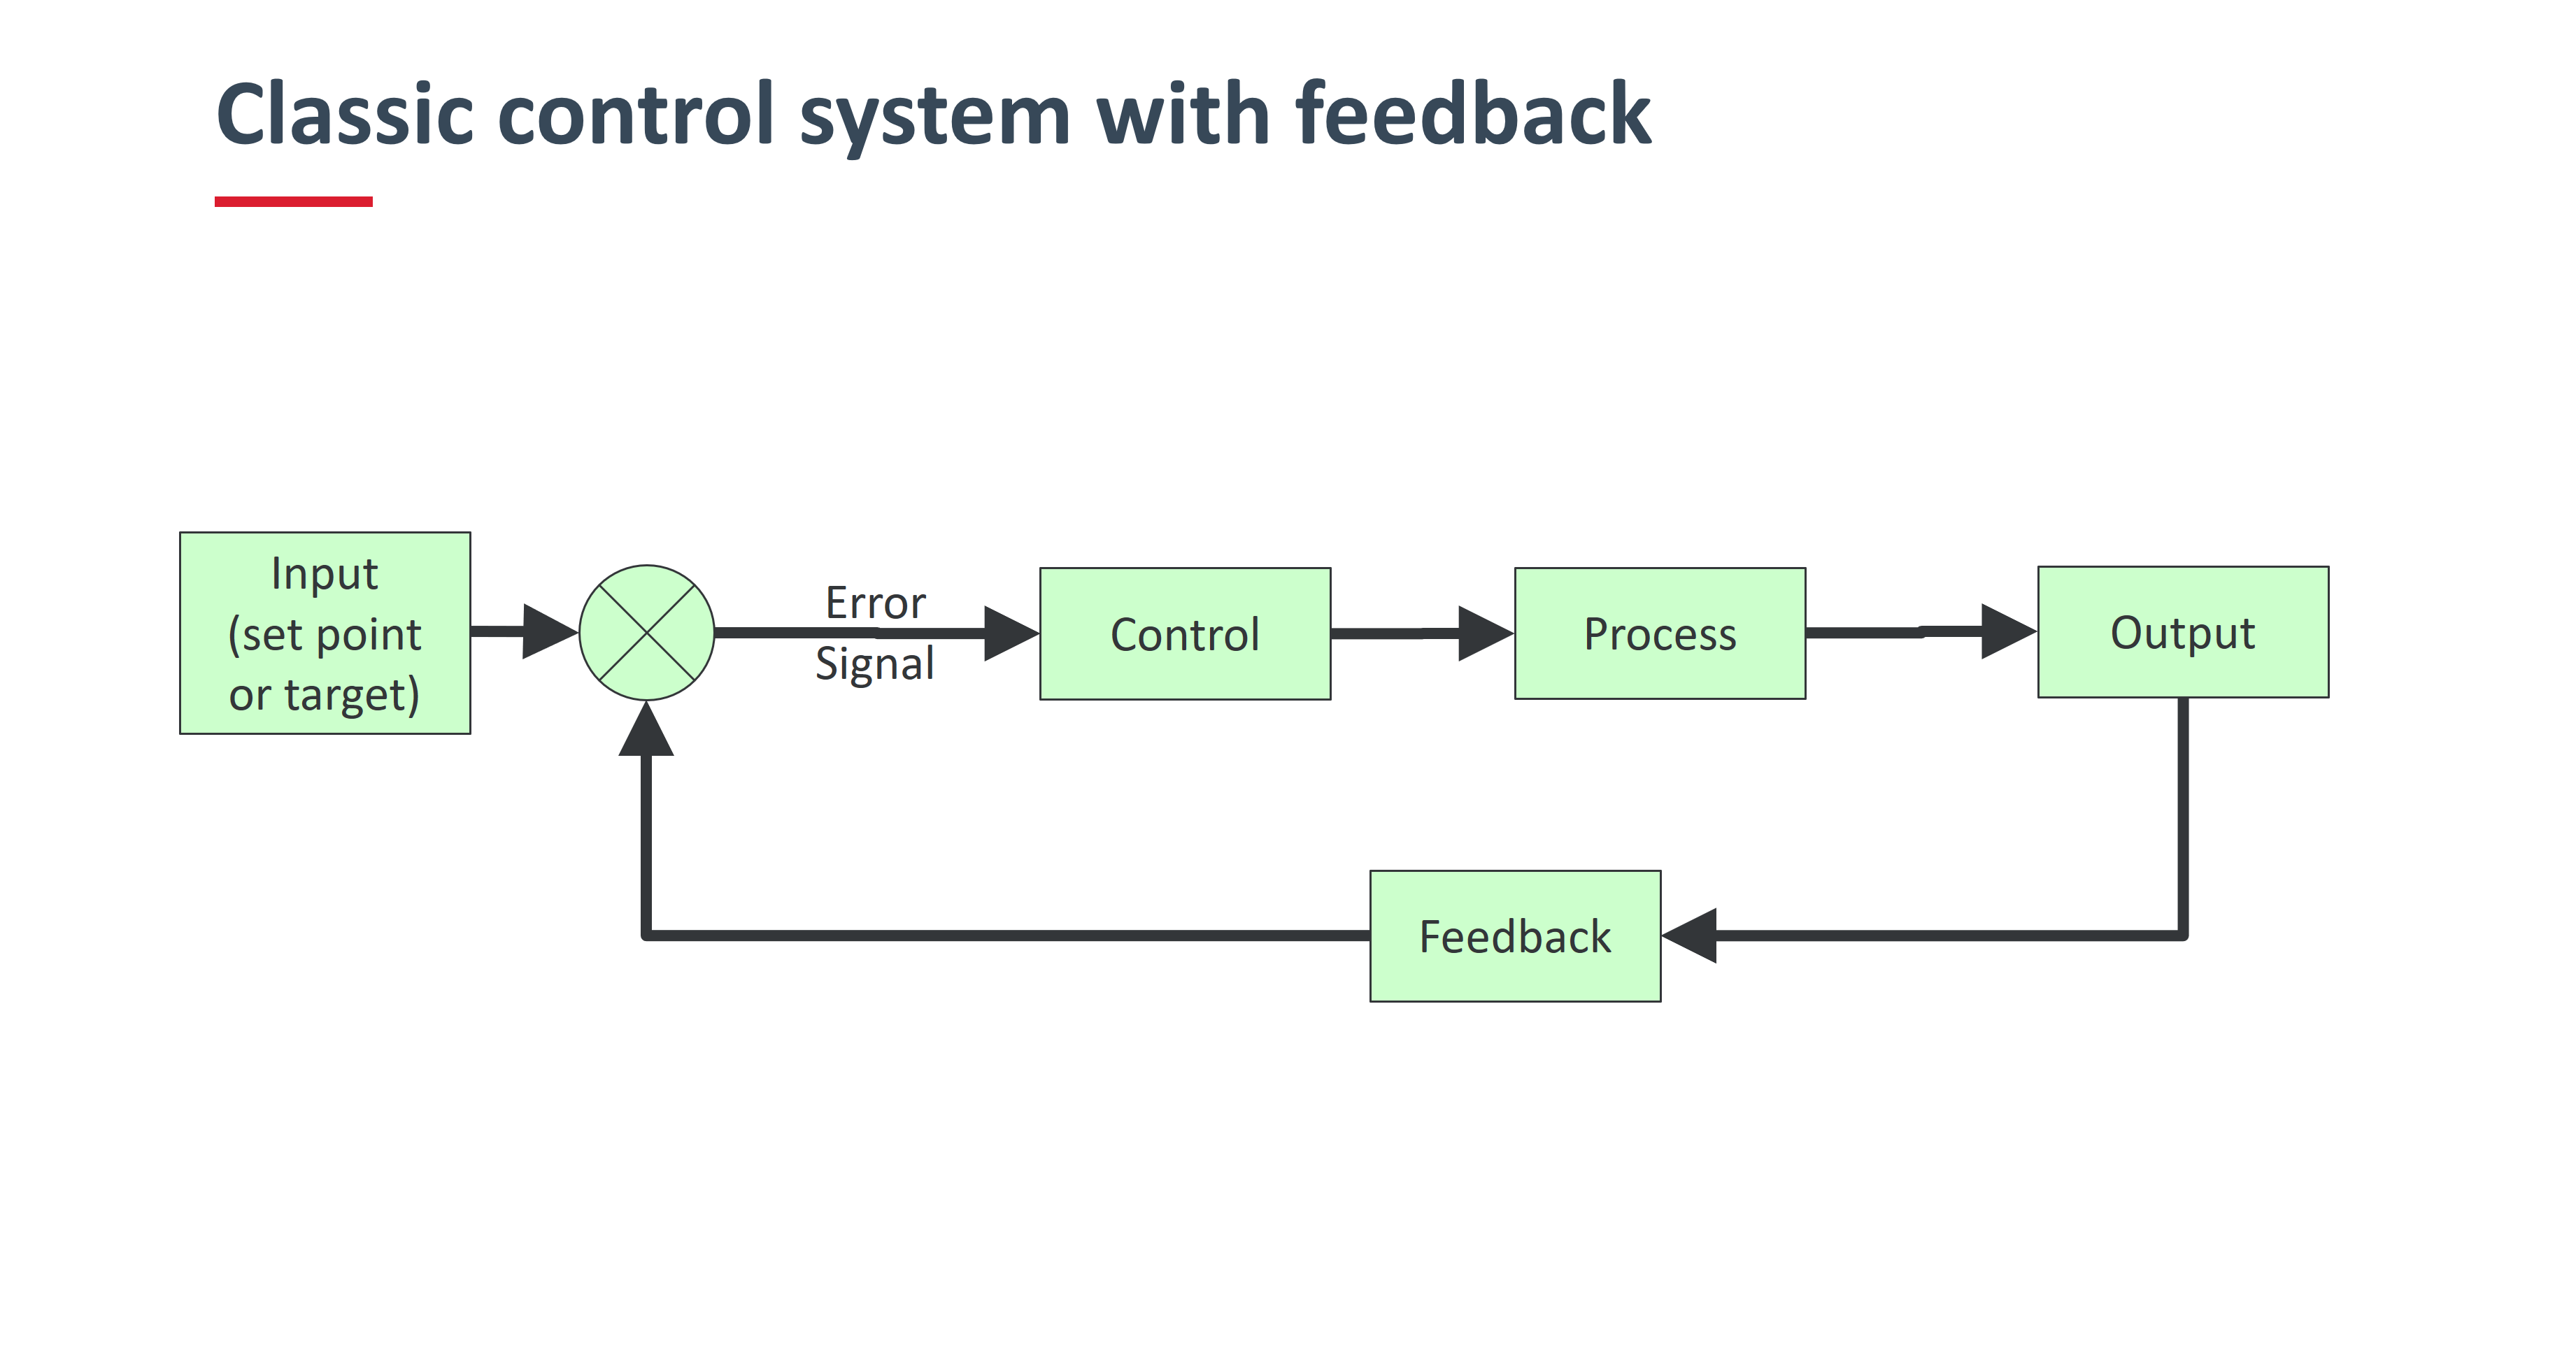 Classic control system with feedback